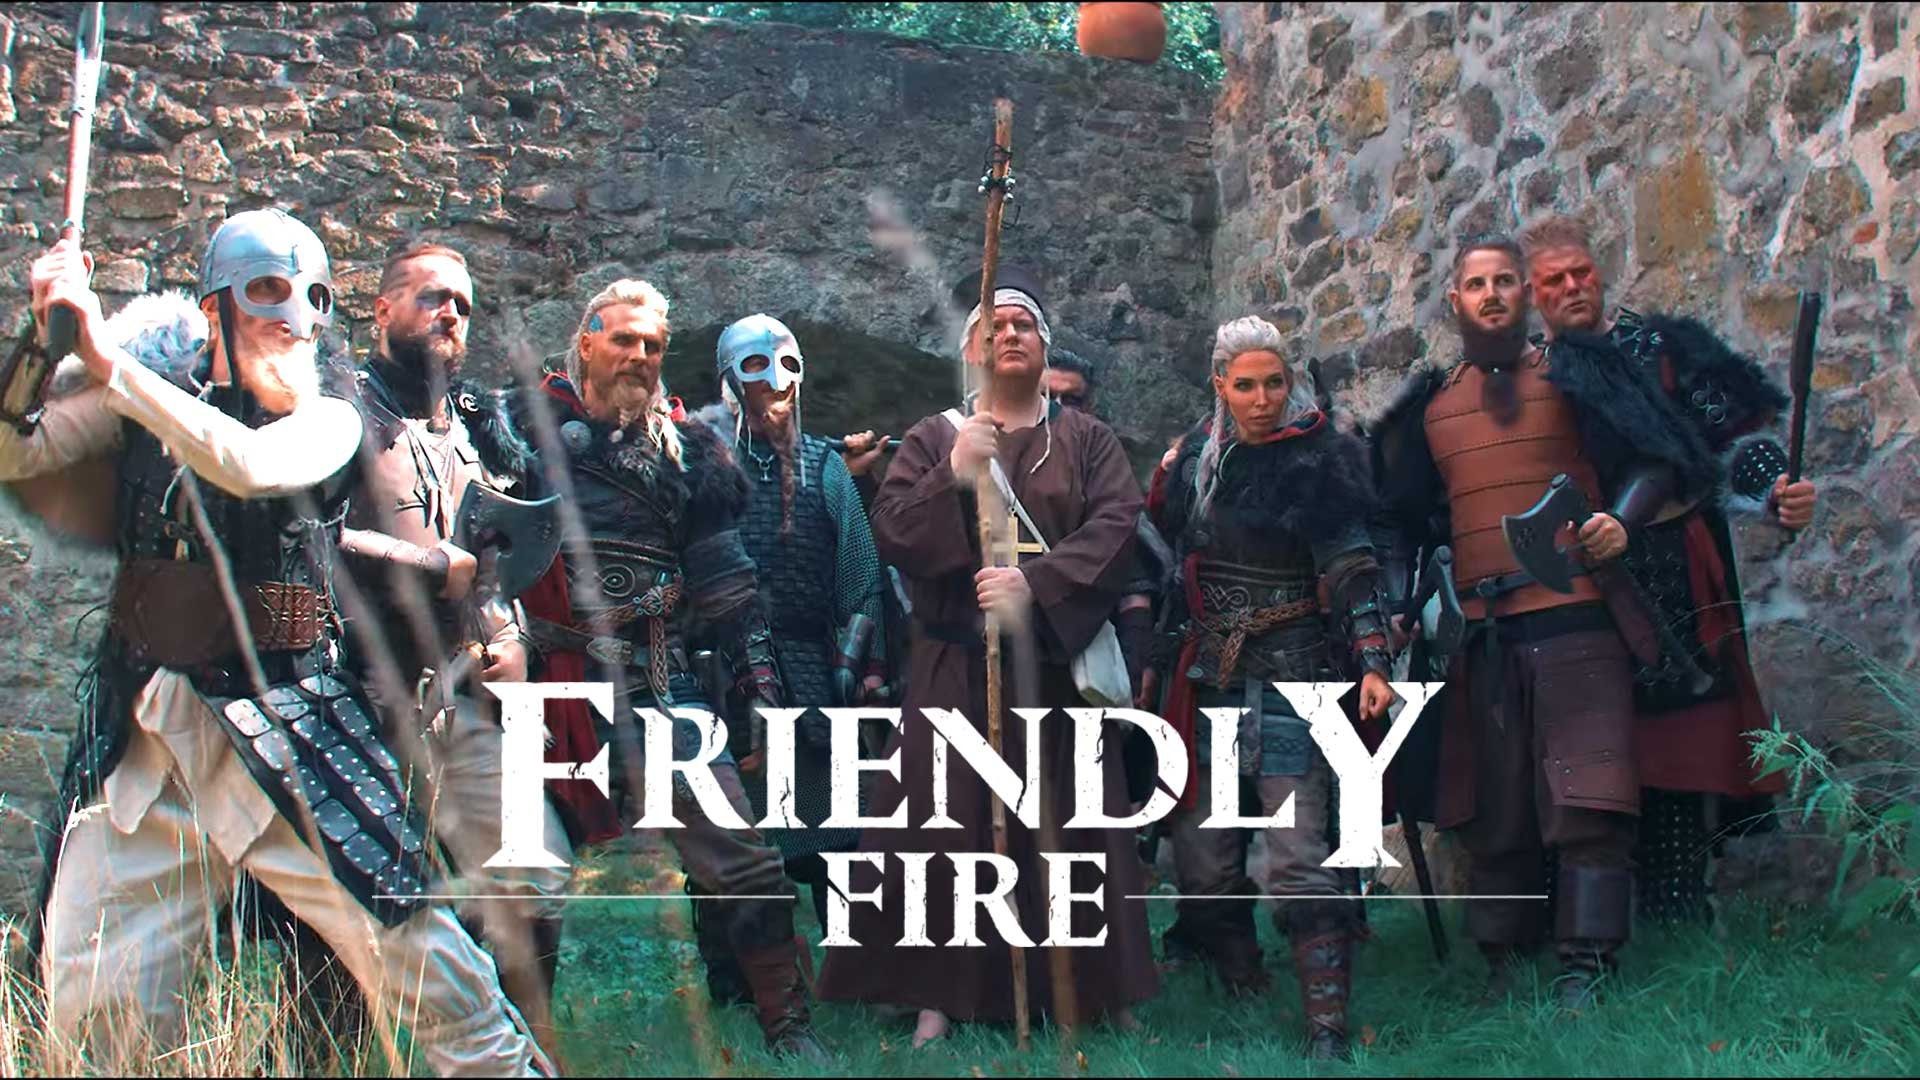 friendly fire 6 fotoshooting